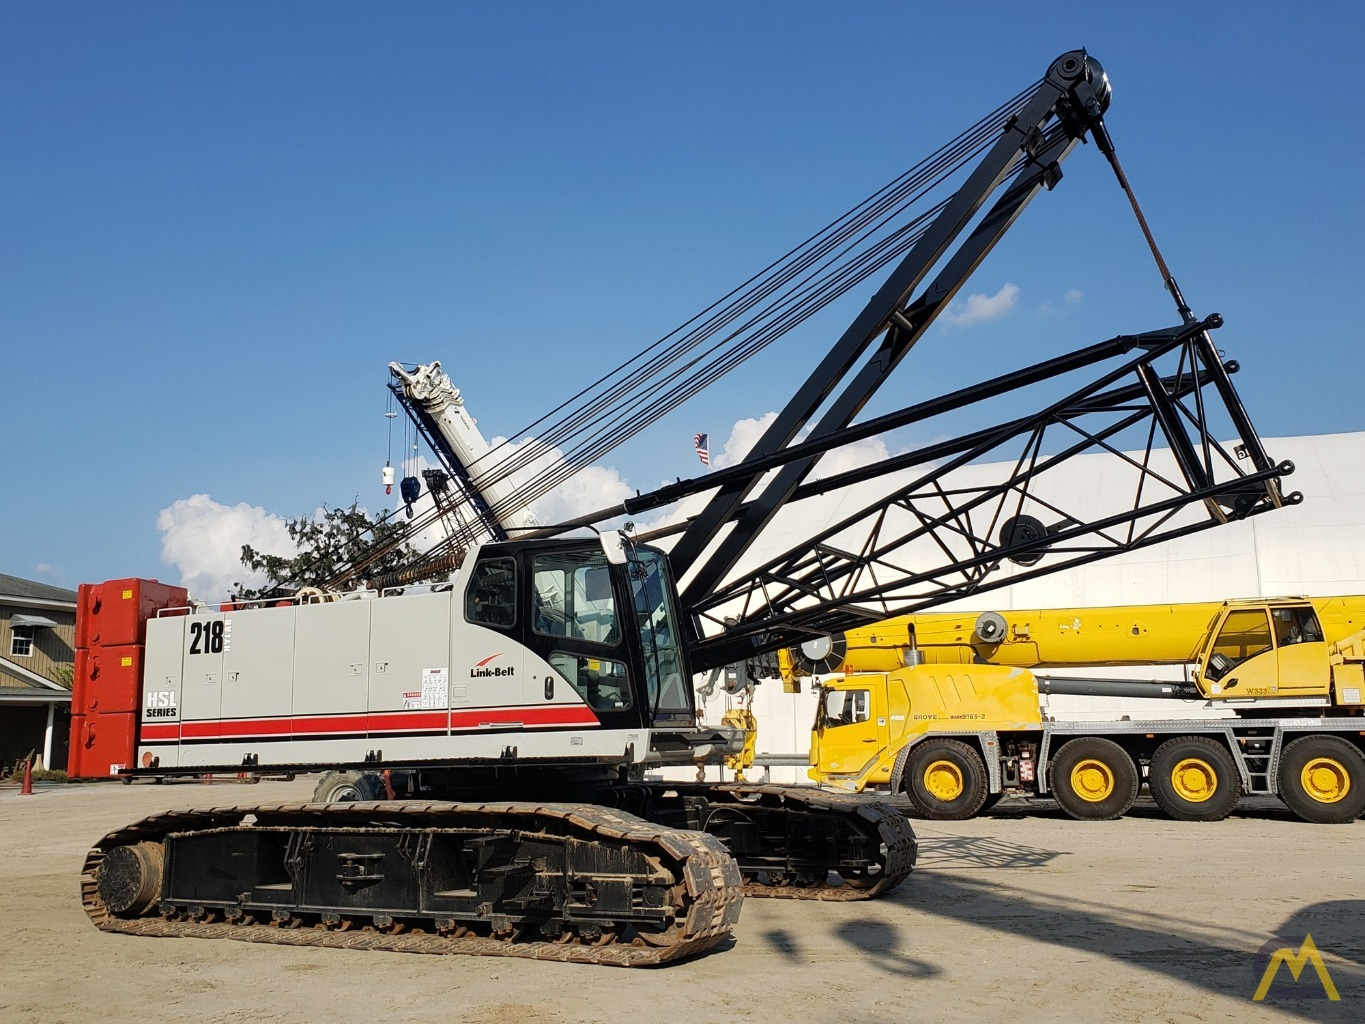 2012 Link-Belt 218HSL 110-Ton Lattice Boom Crawler Crane 0